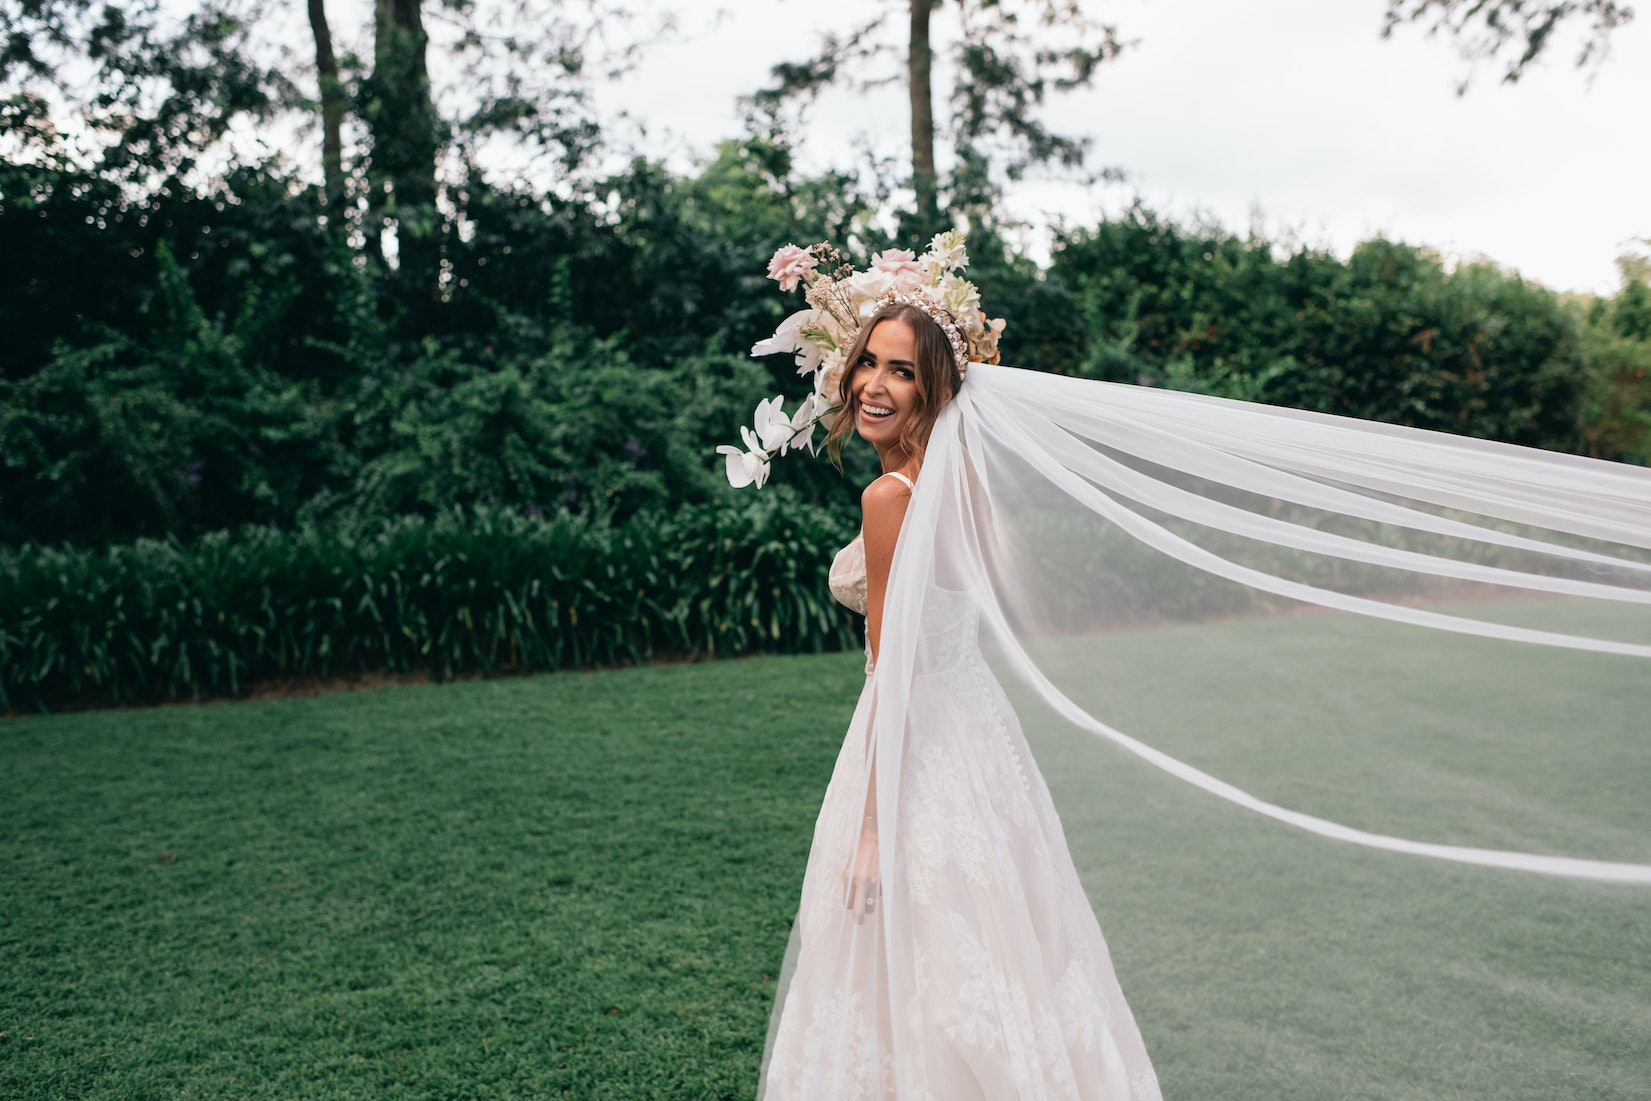 Bride in dress with long veil